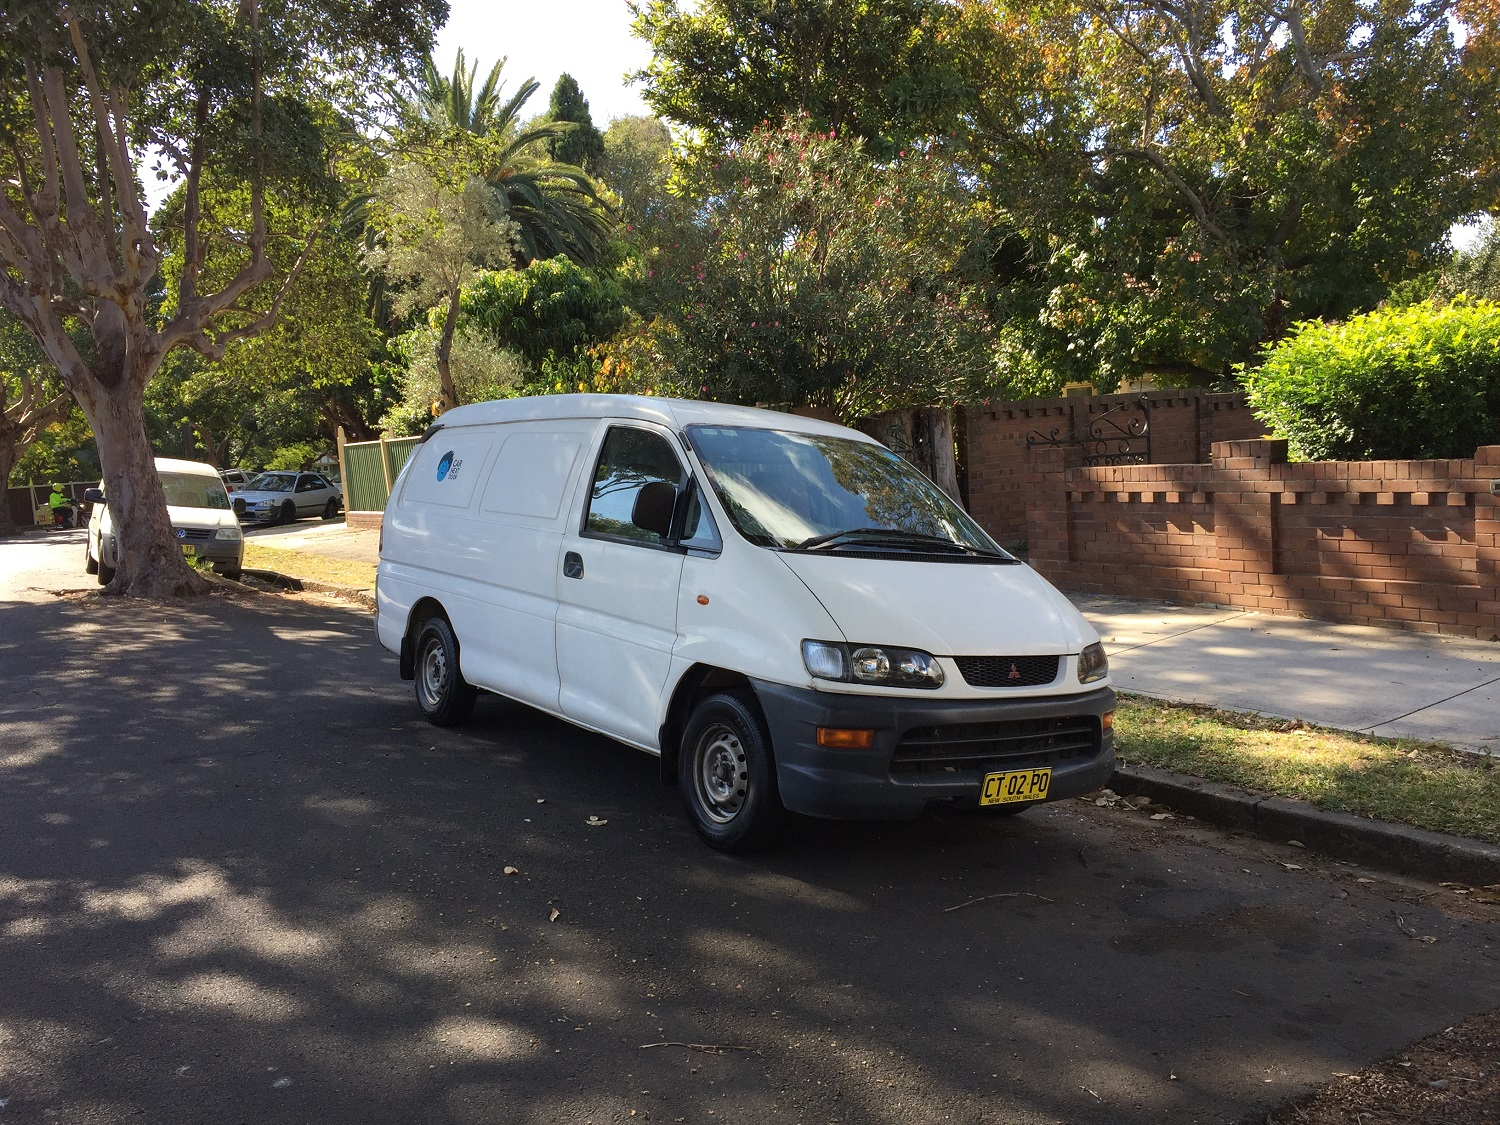 Picture of Kendall's 2002 Mitsubishi Express